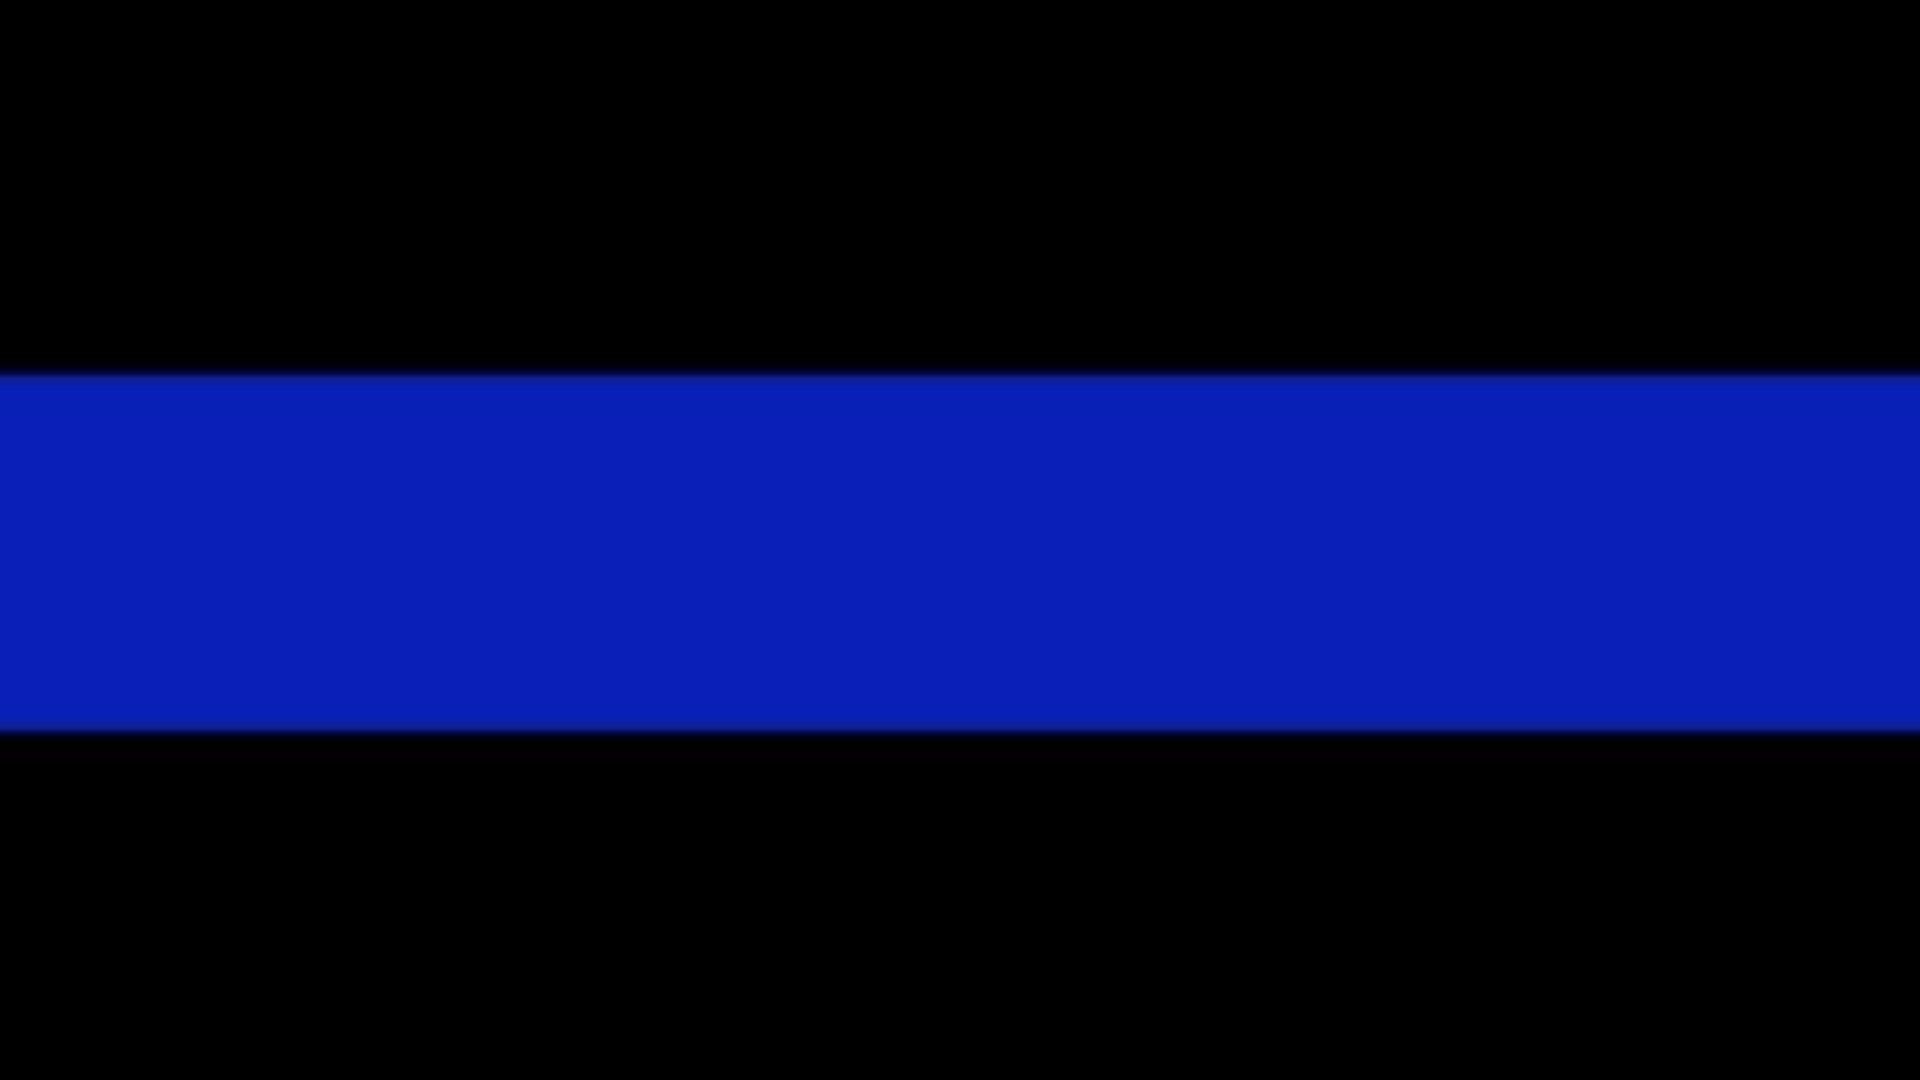 Battlefield Hardline Montage The Thin Blue Line A Tribute For Those Who  Serve In Law Enforcement – YouTube